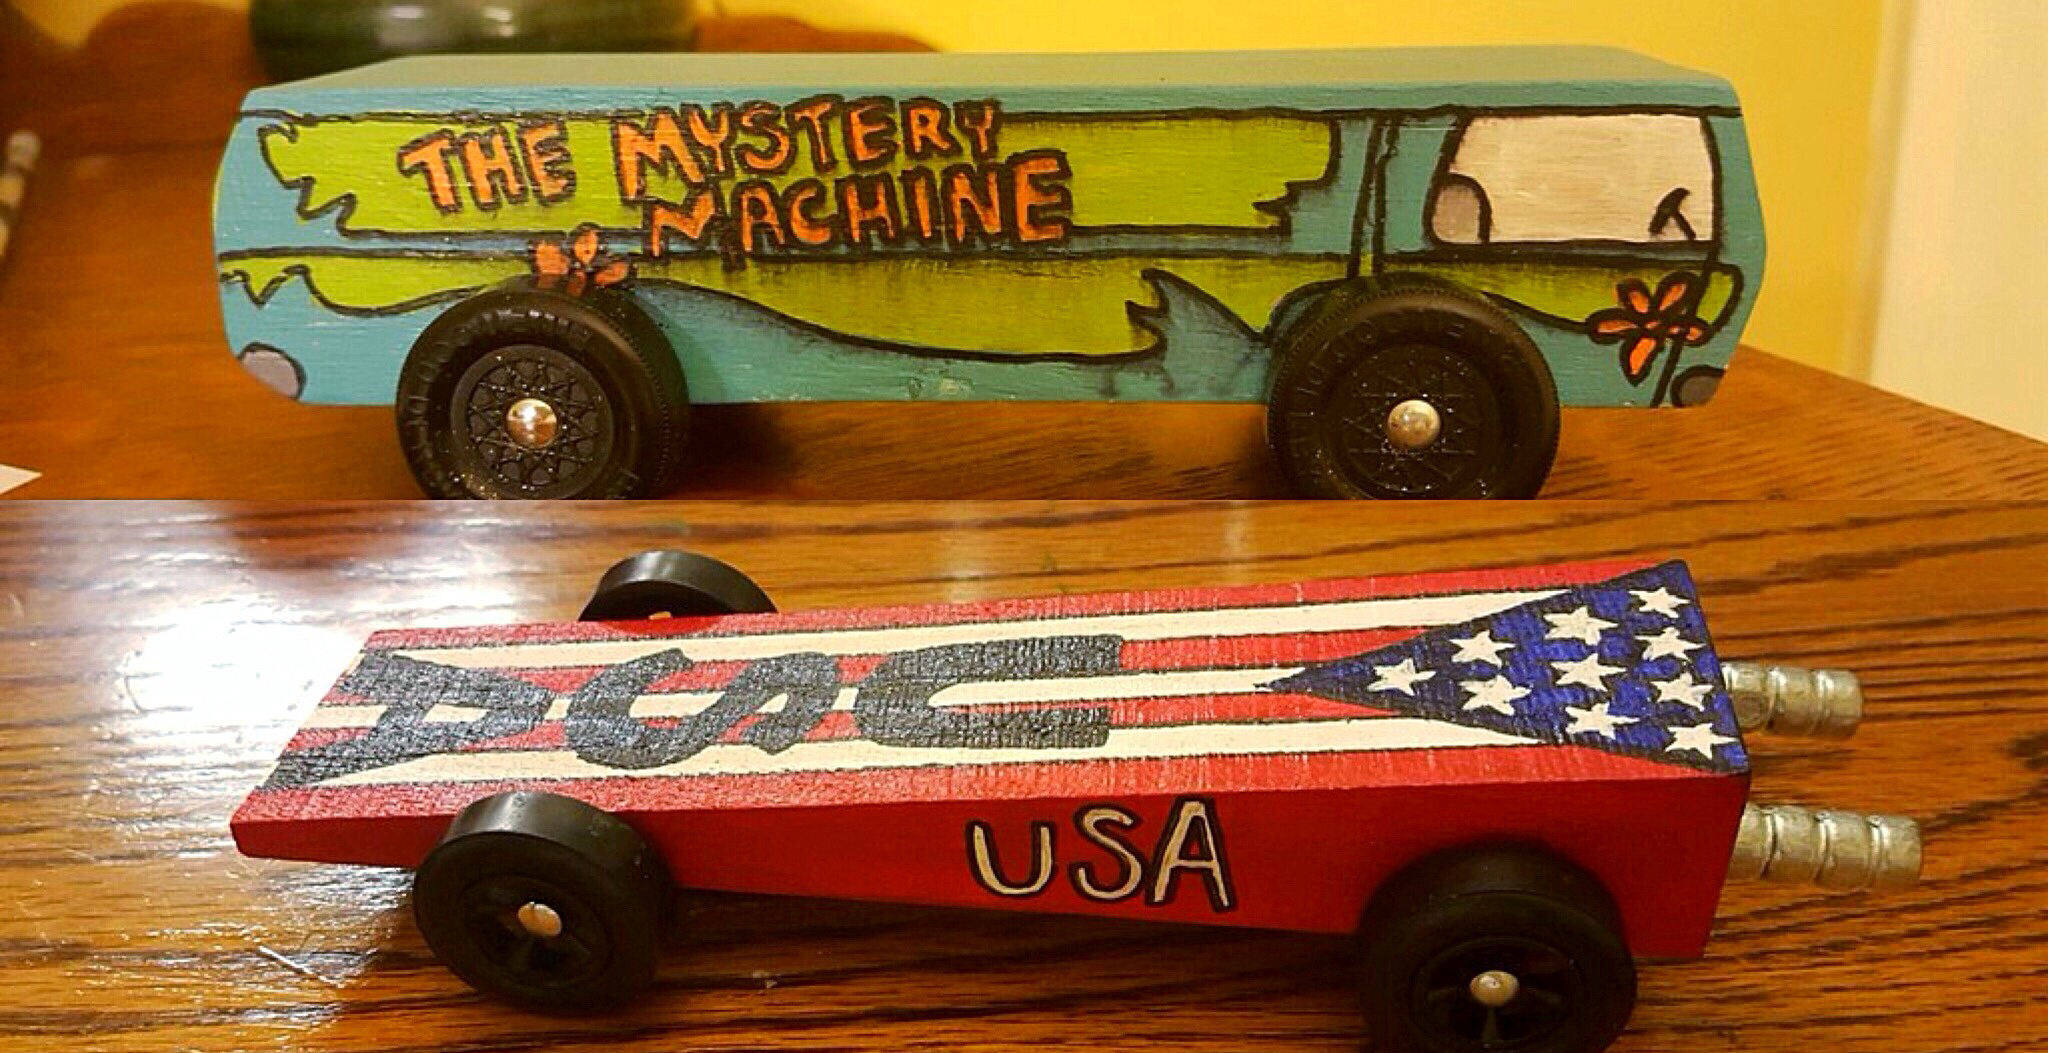 Derby cars for one of my nephews, 2016.